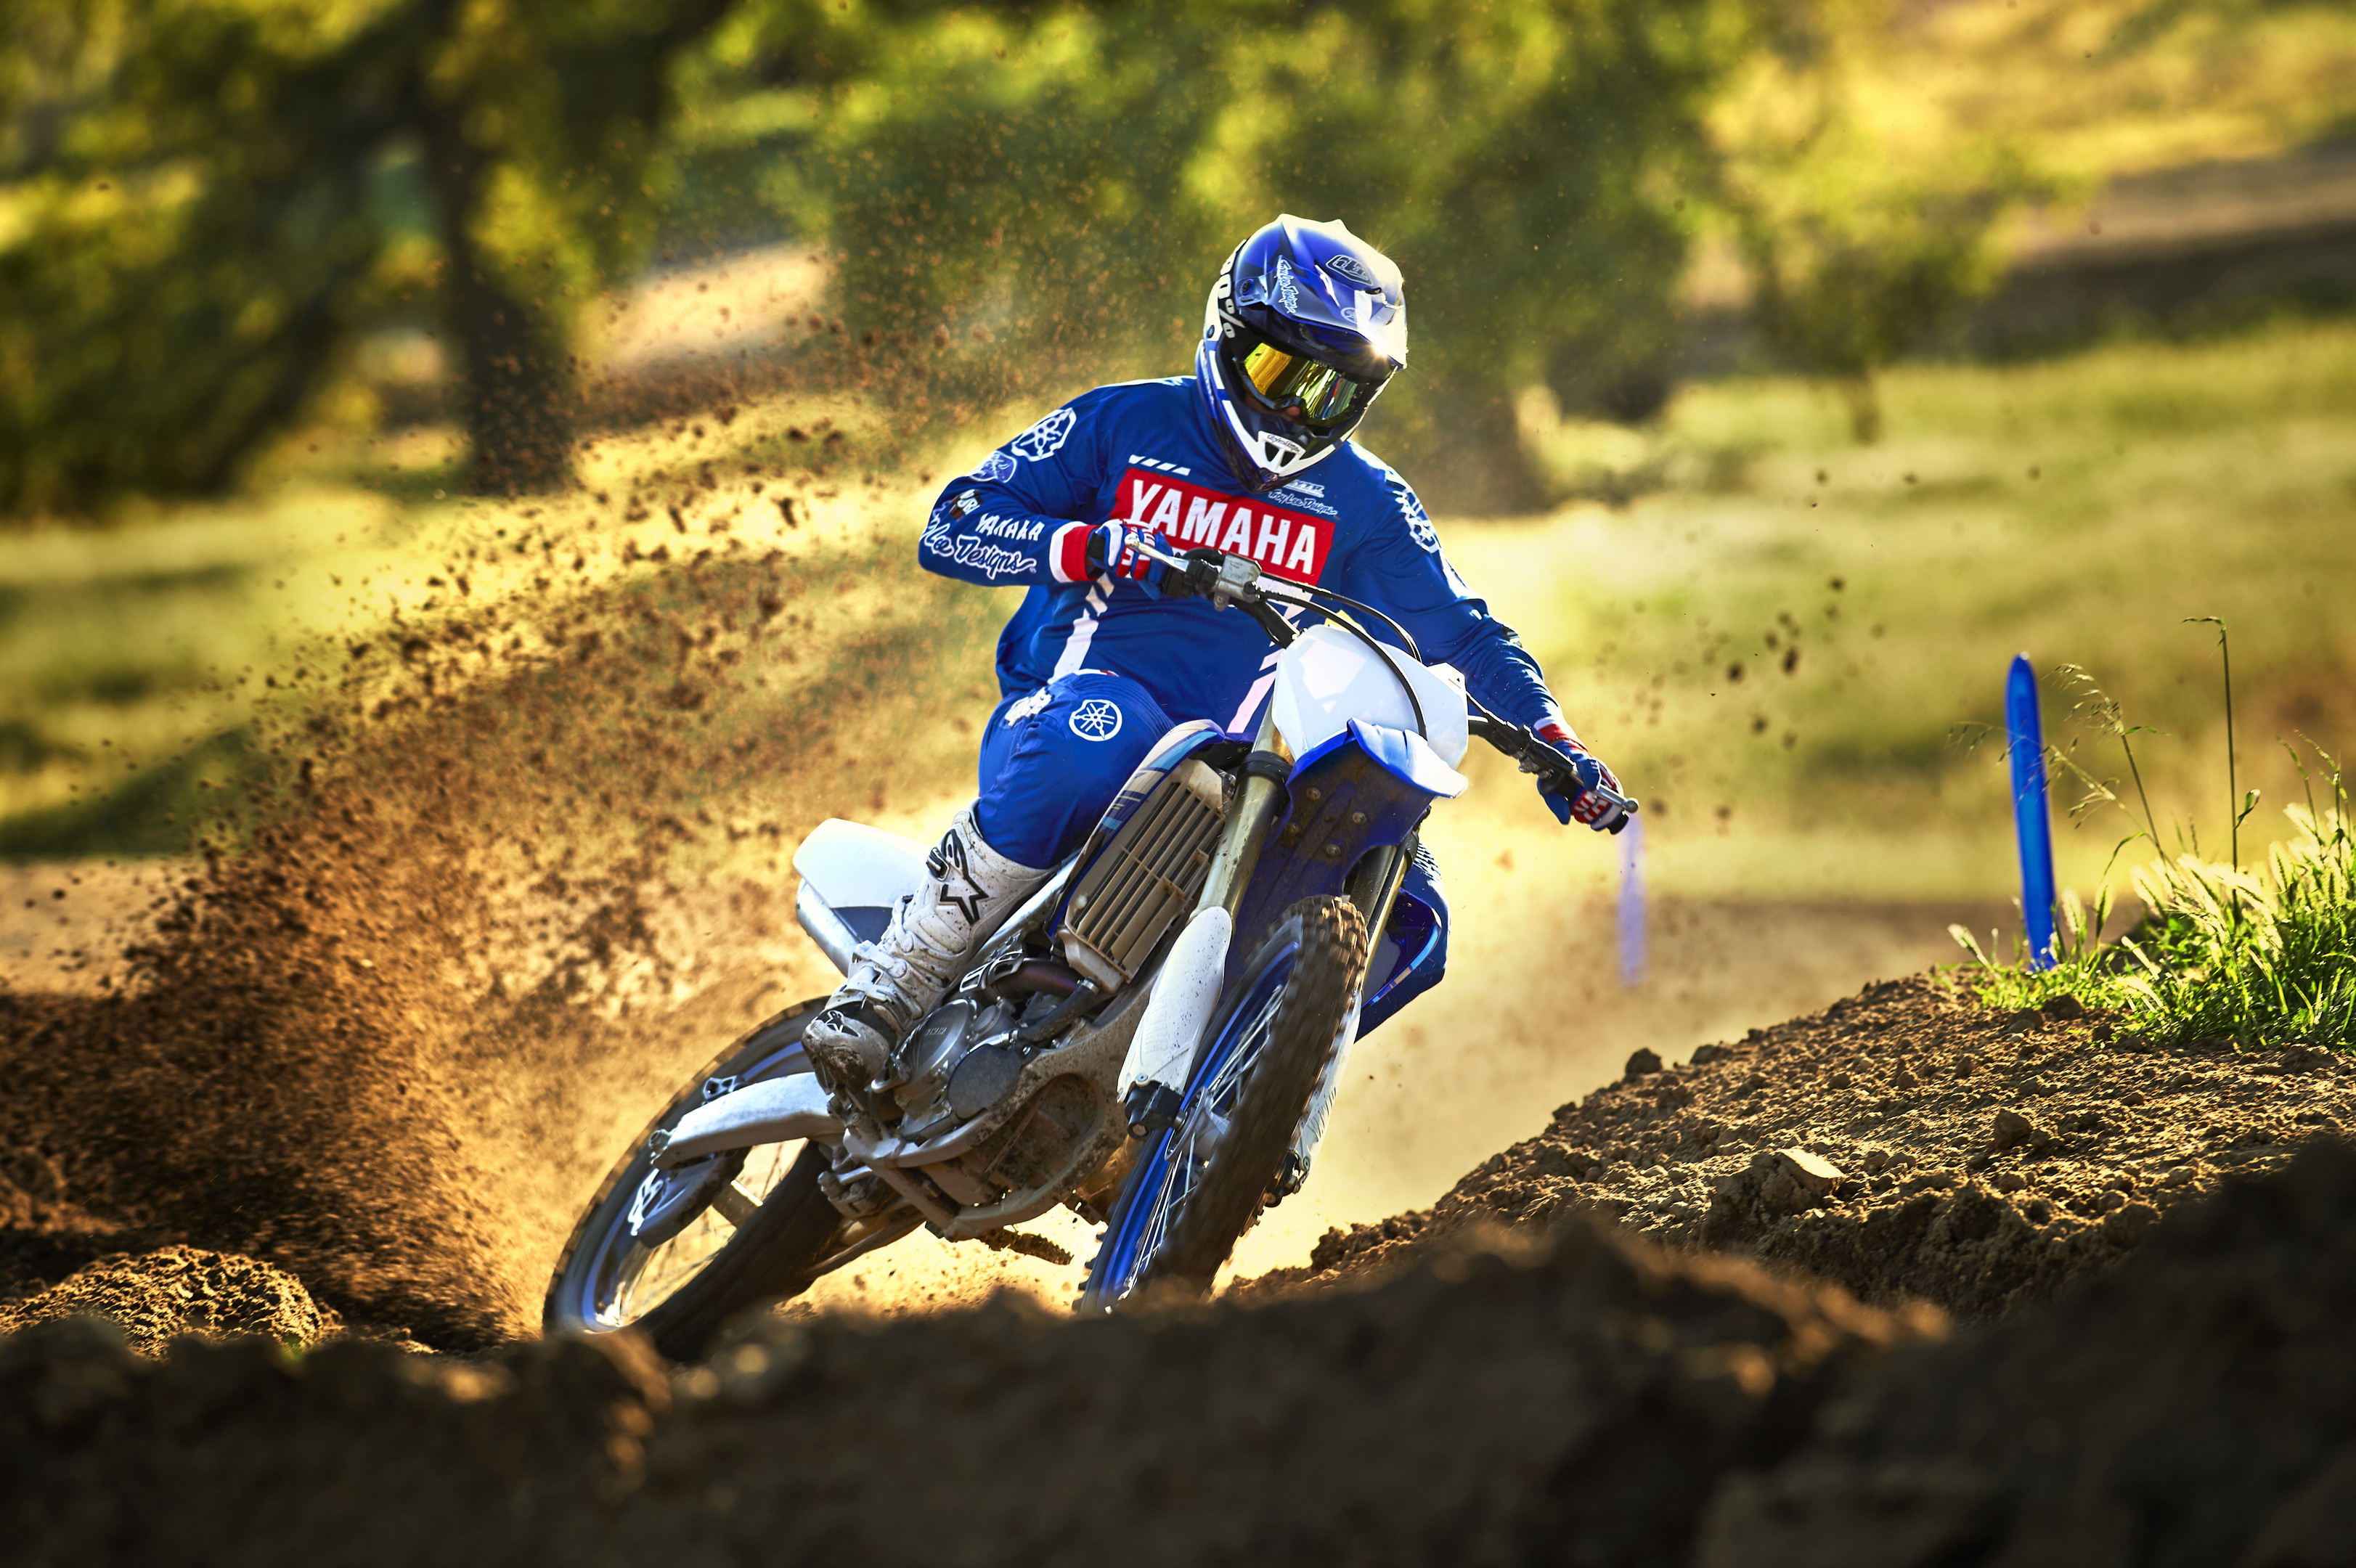 Yamaha Atv For Sale >> 2020 YZ250F - S&P Motorbikes